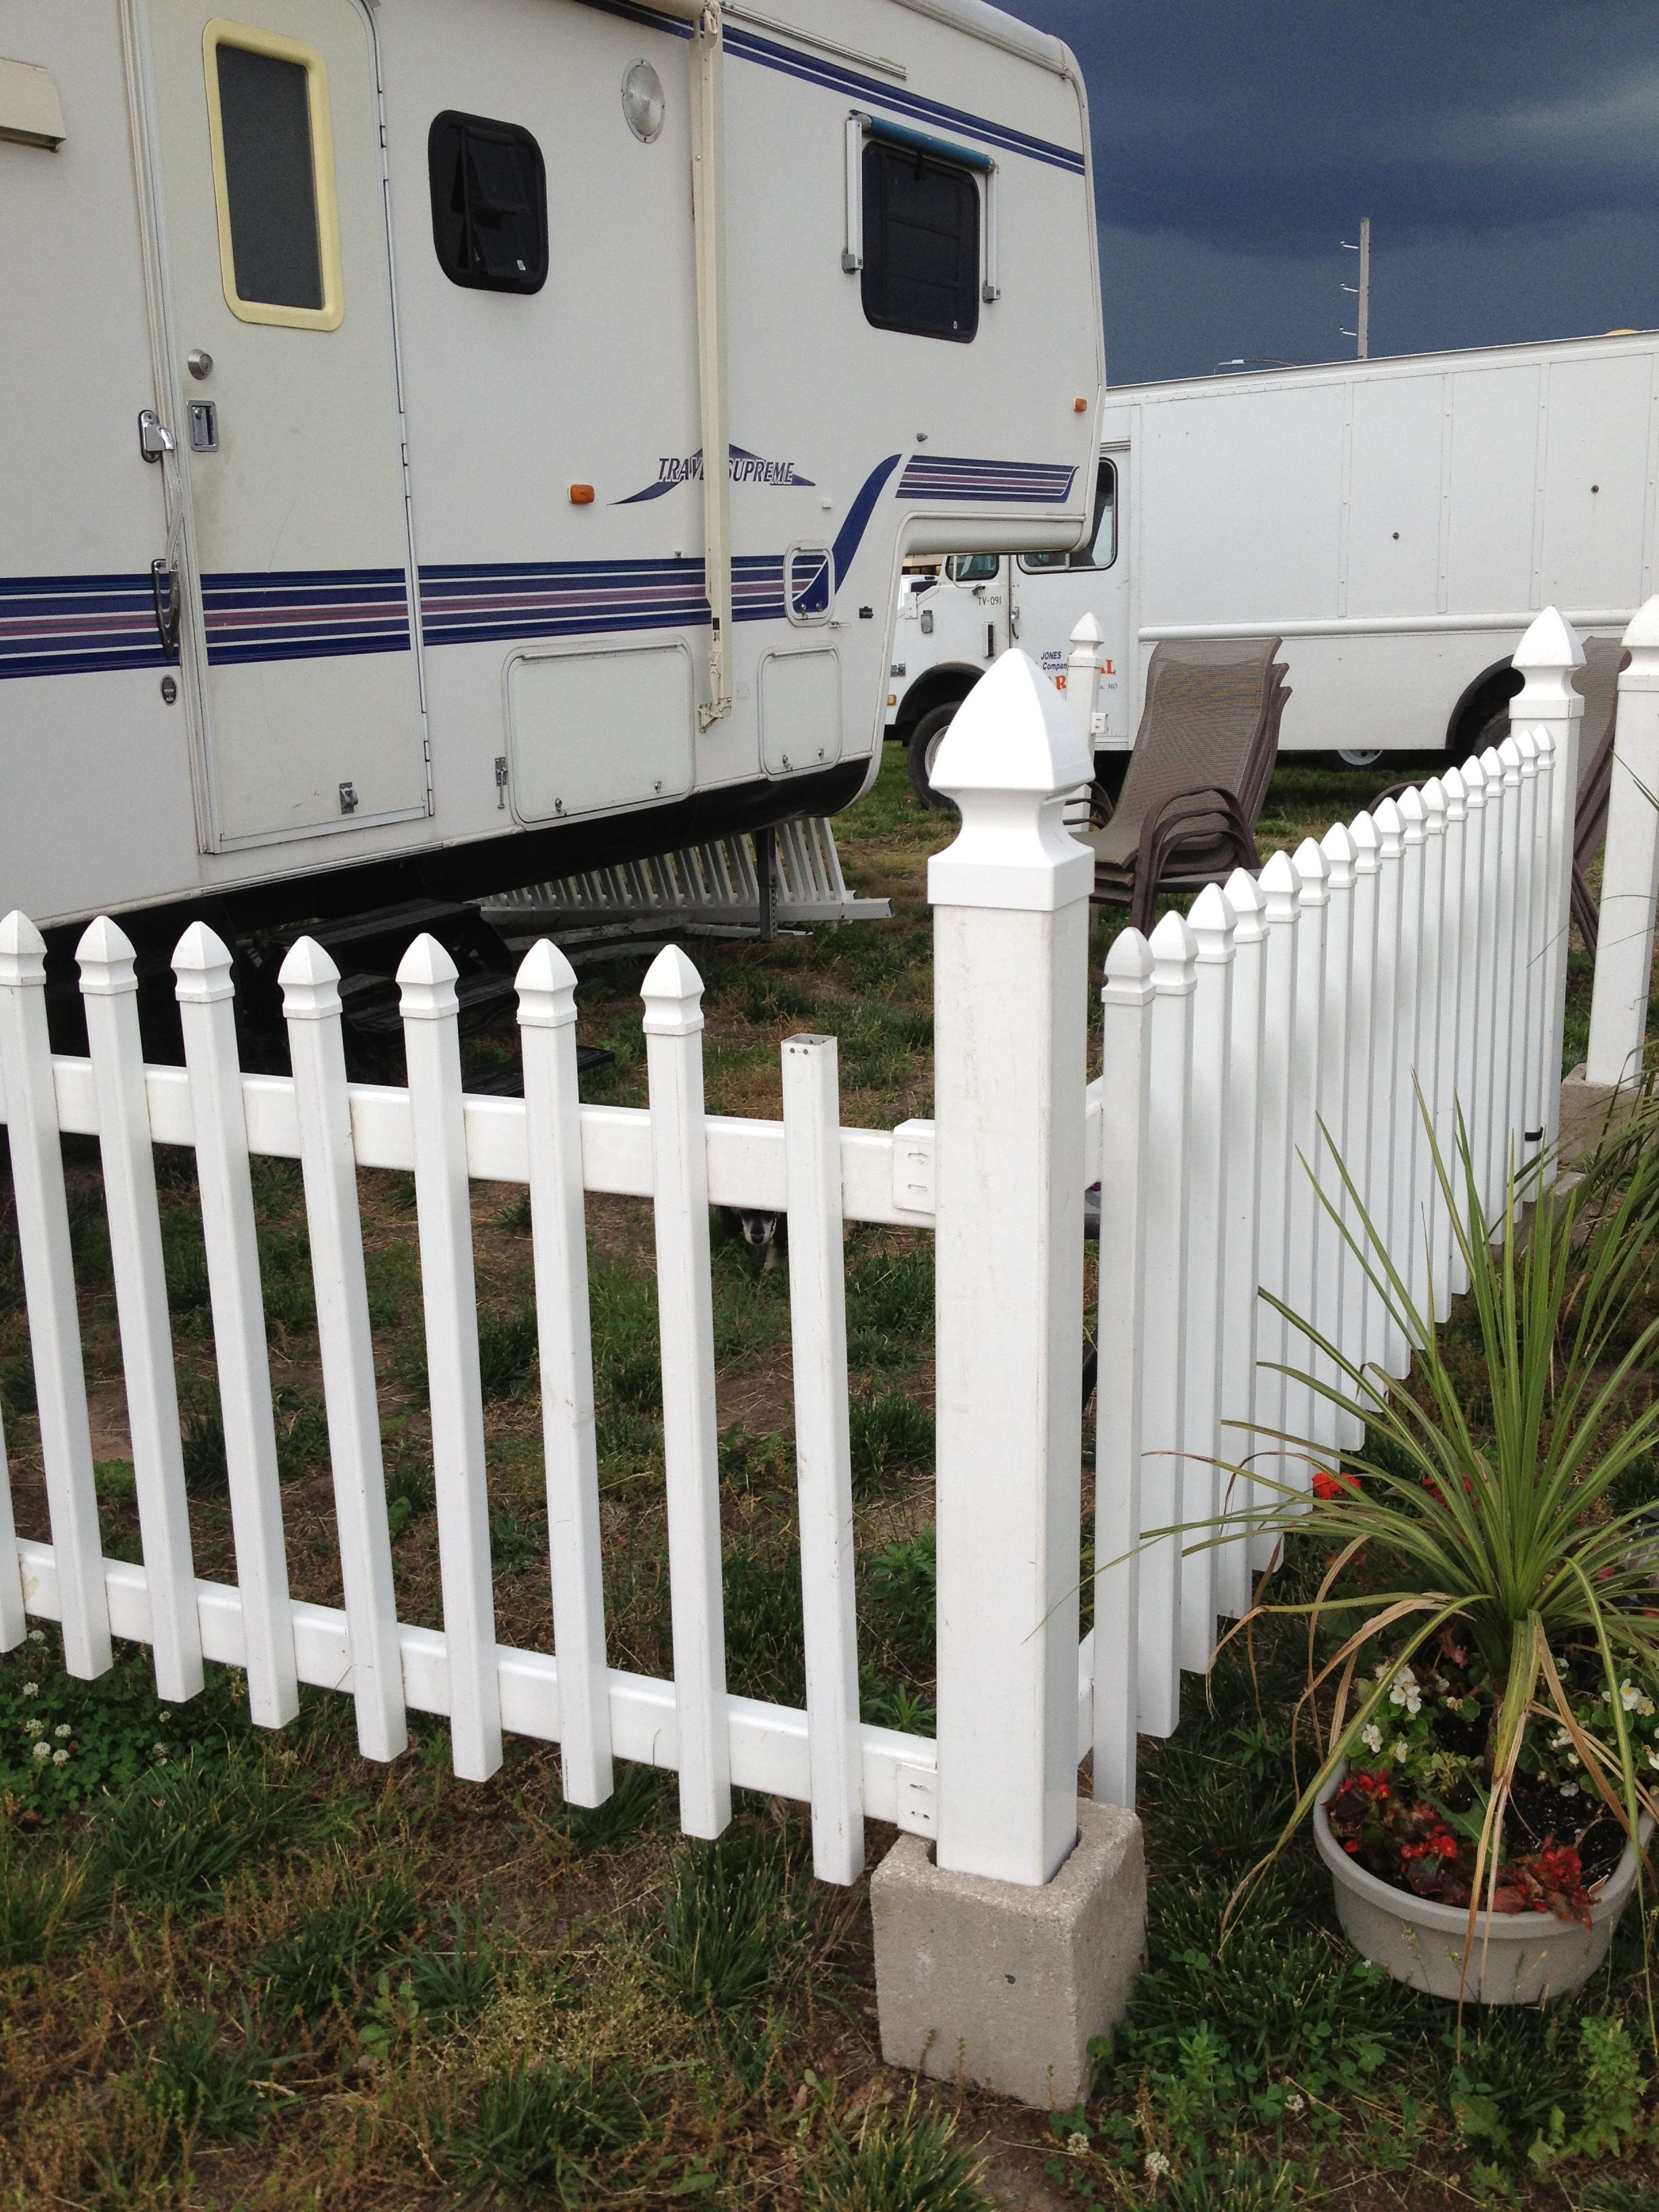 Picket Fence In Cinder Blocks Stable But Moveable